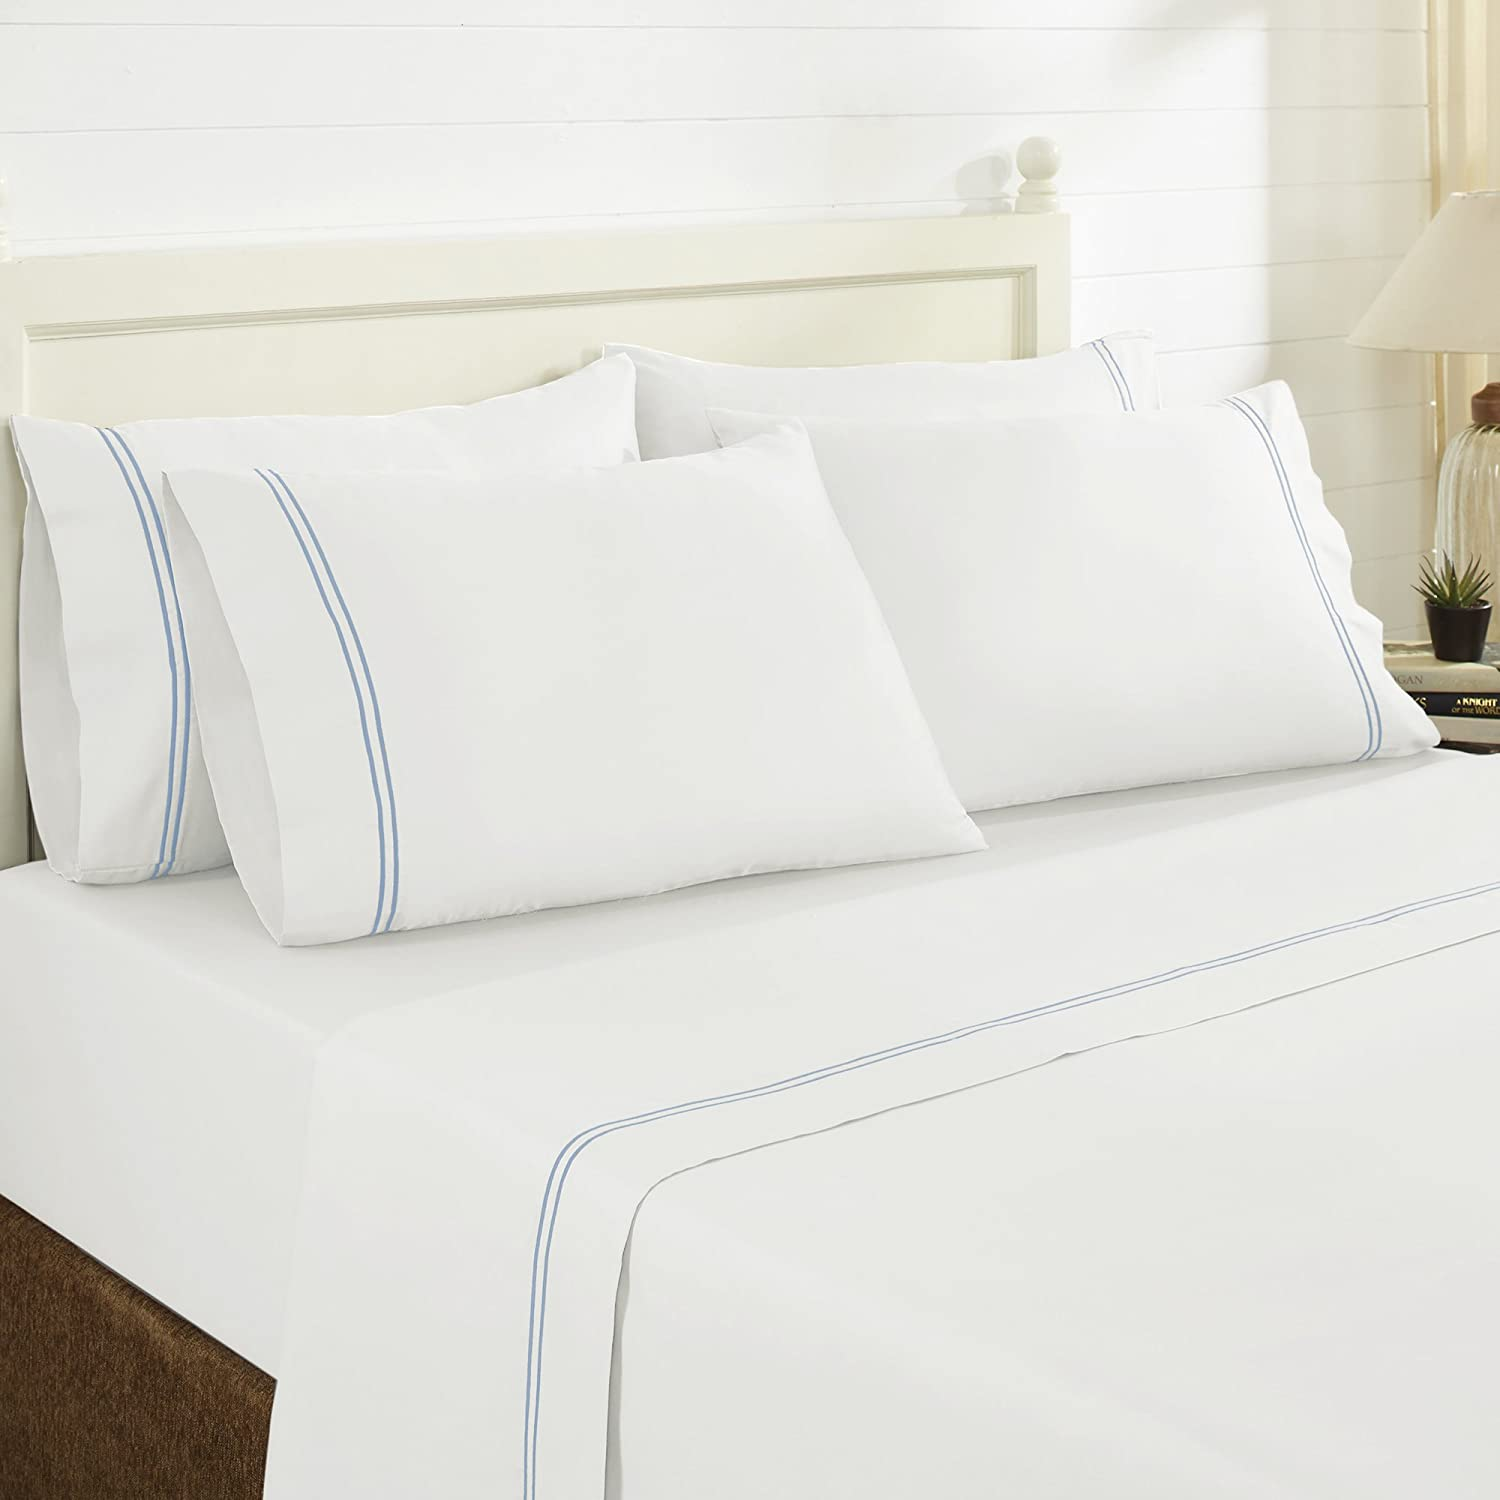 Silver, King Amrapur Overseas Ultra-Soft 1500 Thread Count 4-Piece Cotton Rich Solid Bed Sheet Set with Single Hem Stitch